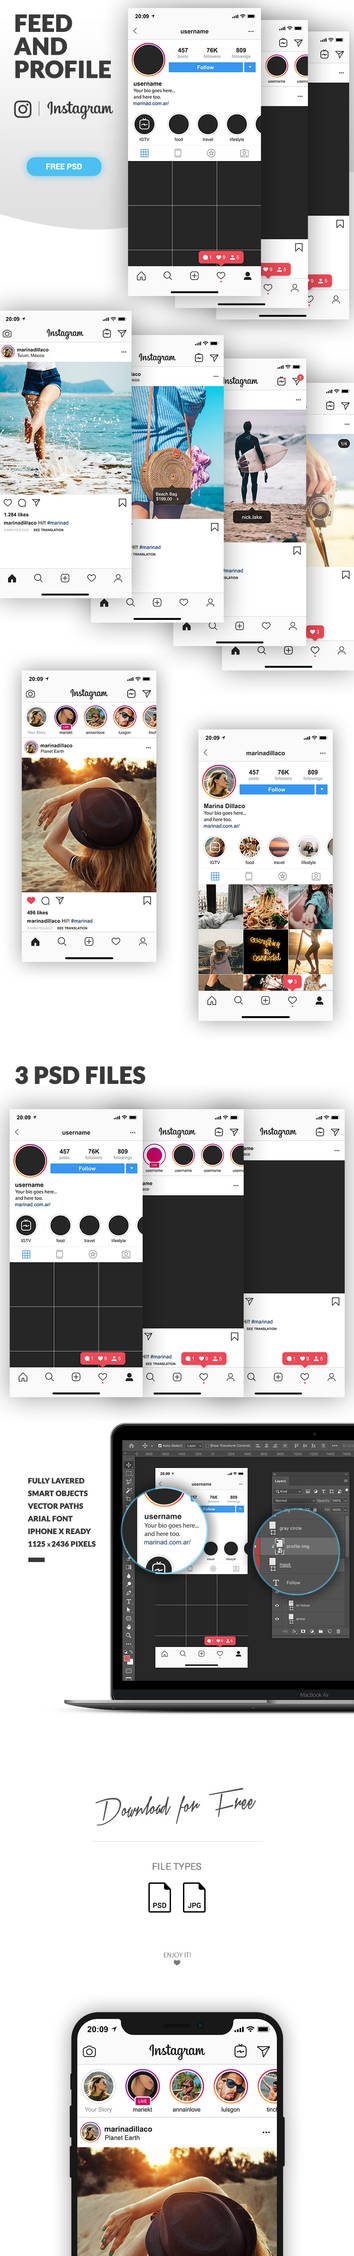 Instagram Mockup Feed and Profile in PSD by MarinaD